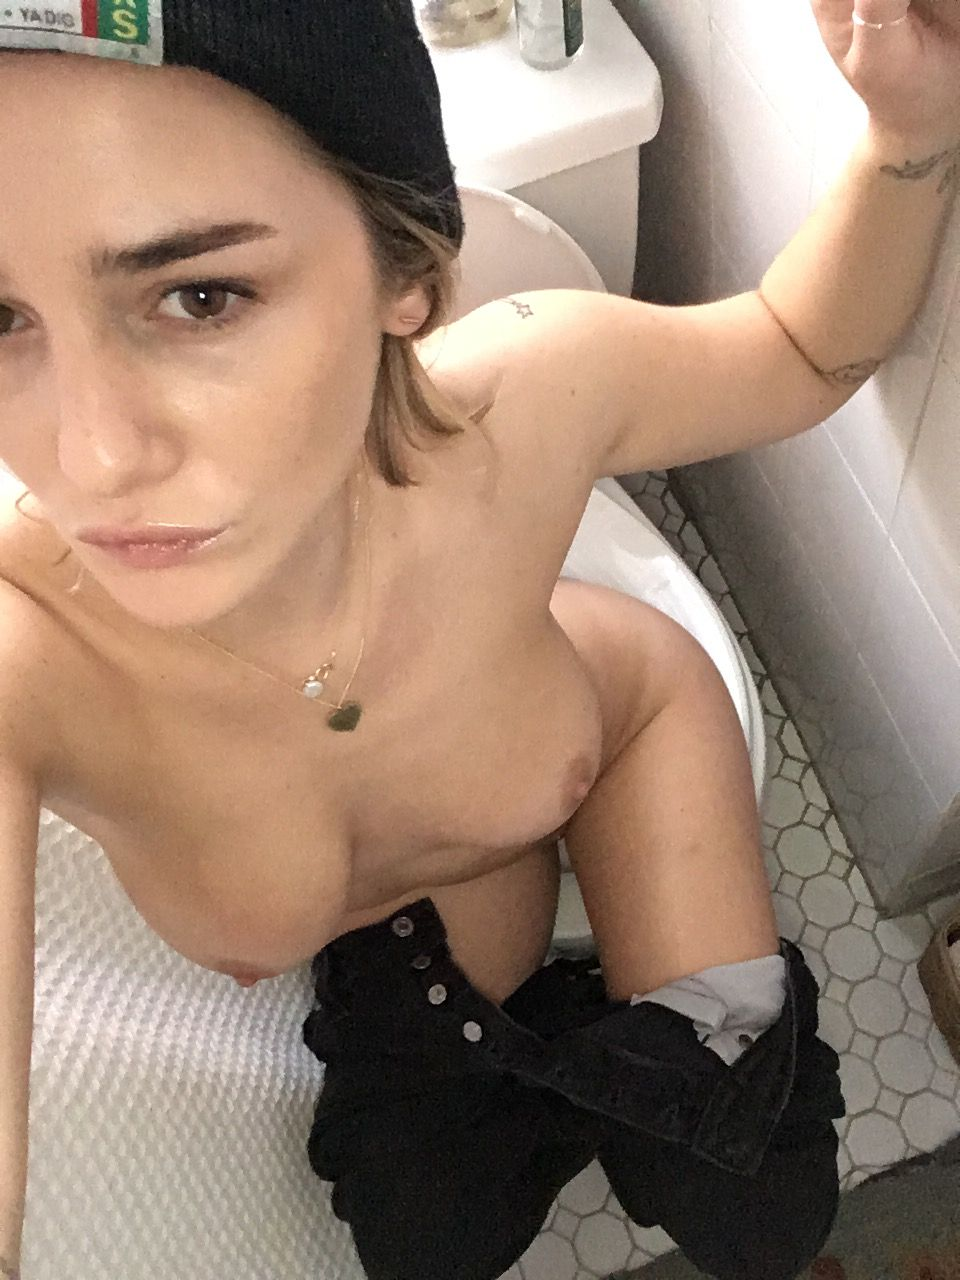 Addison-Timlin-Leaked-1-thefappening_nu_50333a3.jpg